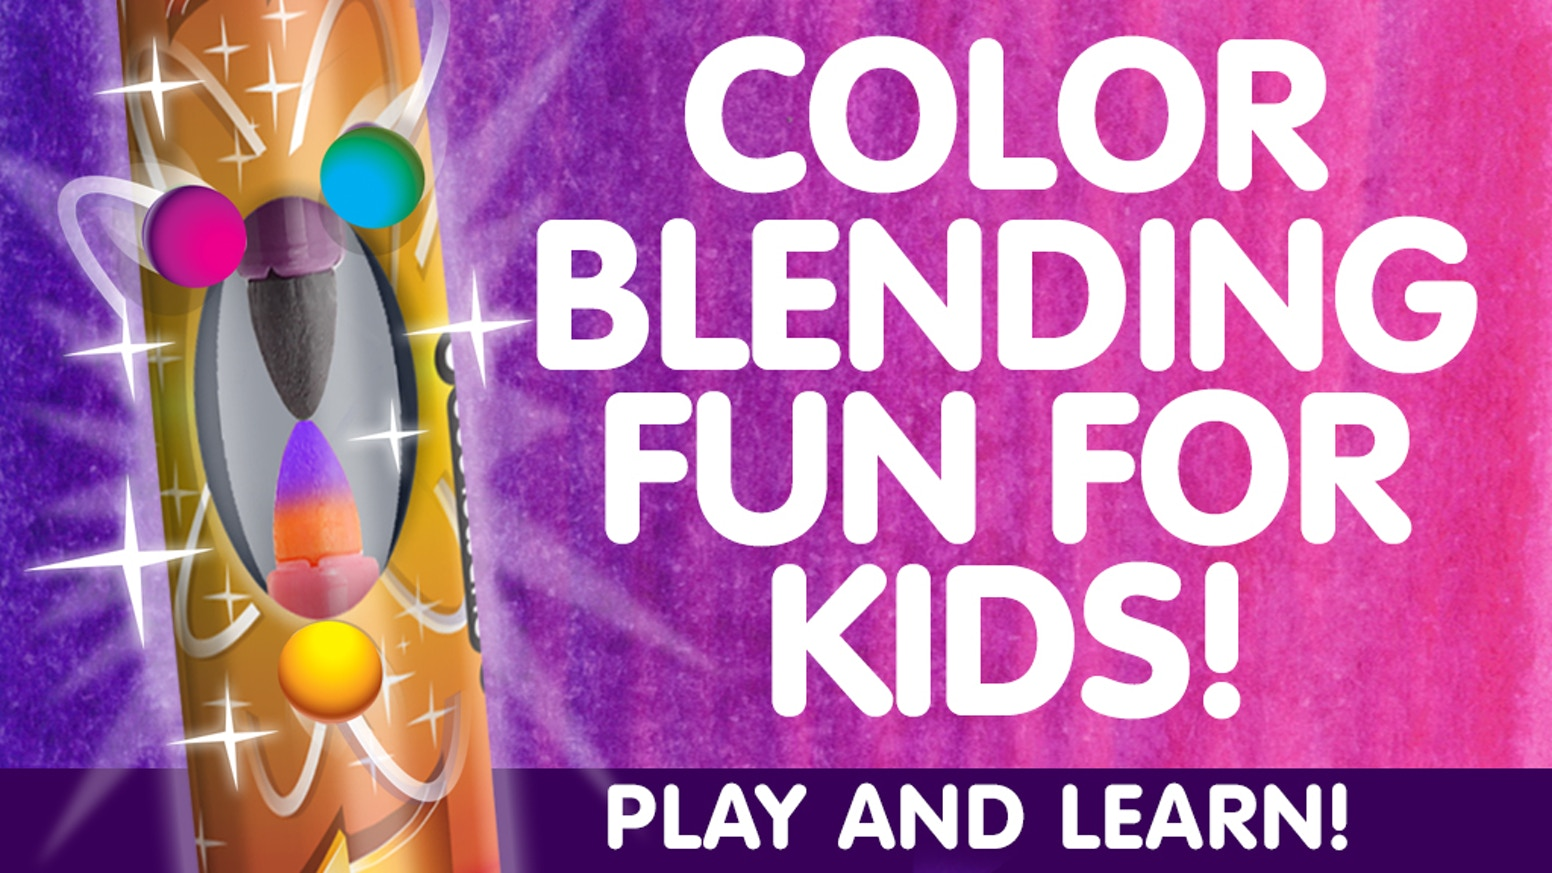 A Whole NEW Blendy Pen  For A Whole NEW Generation Of Color Blending